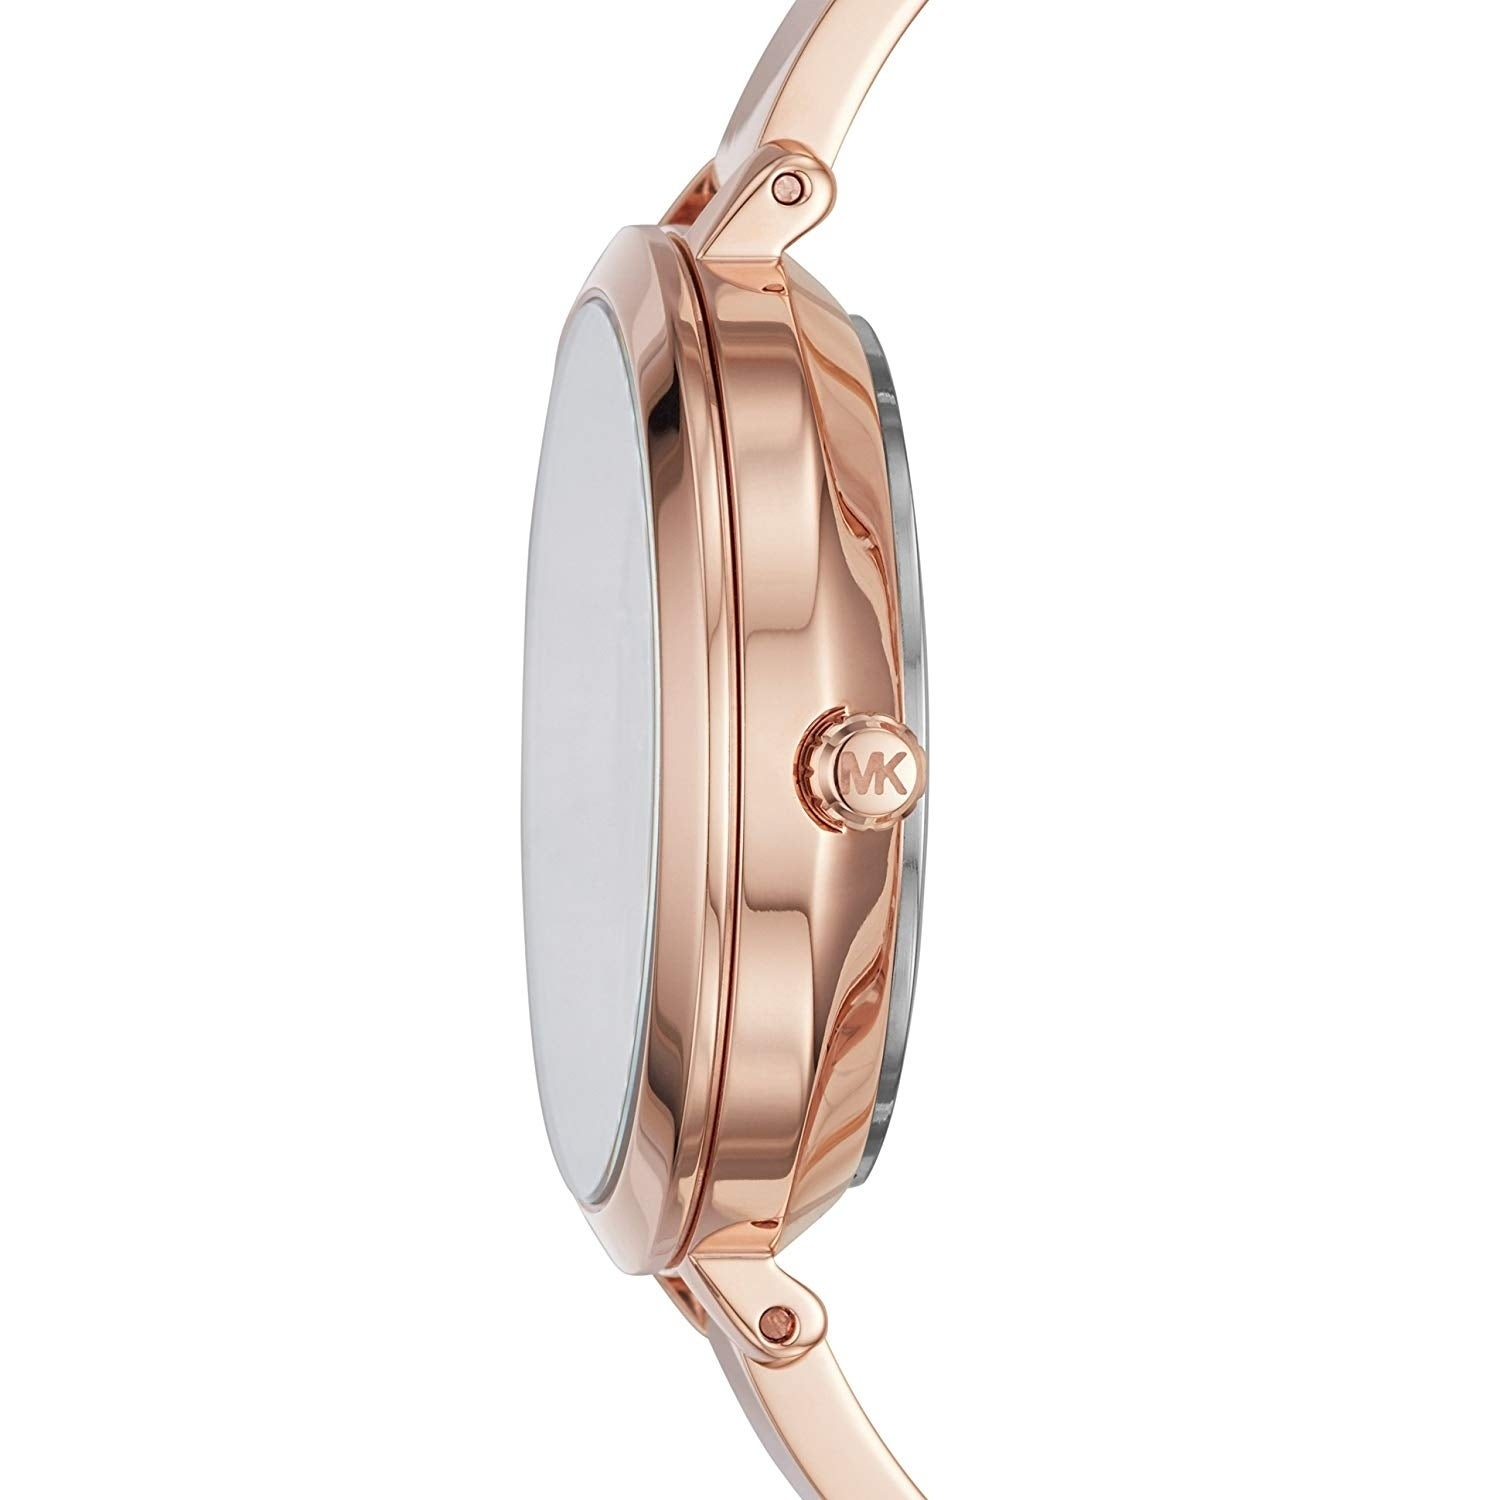 36615a92dcc3 Shop Michael Kors Women s Jaryn Rose Gold Stainless Steel Bangle Bracelet  Watch - Free Shipping Today - Overstock - 22718377